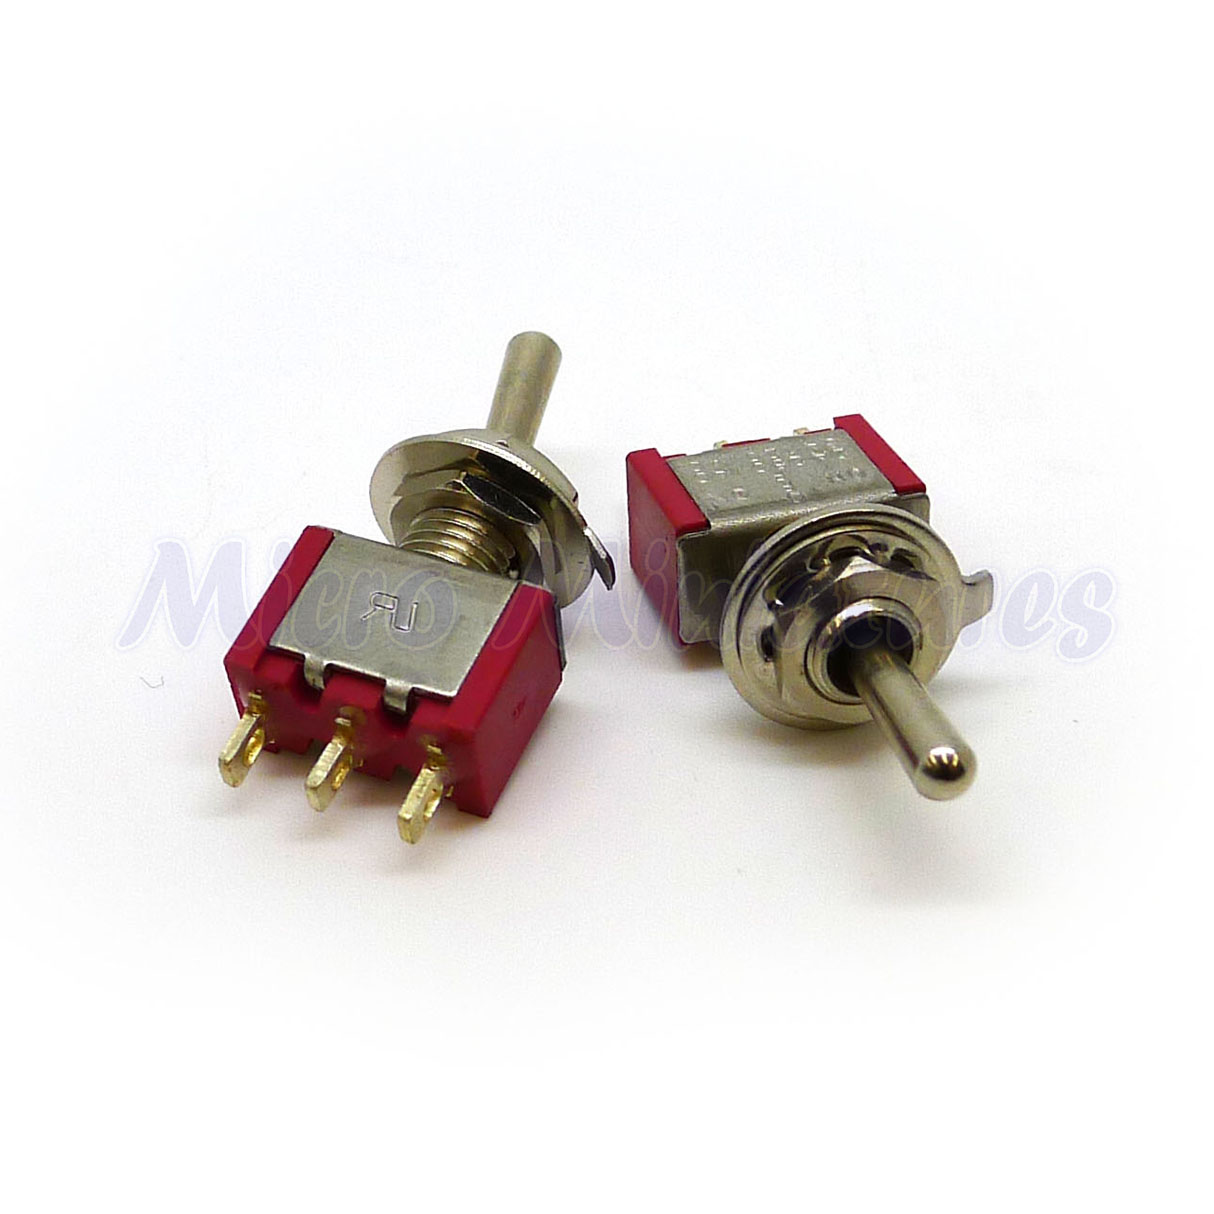 Spst On On Miniature Toggle Switch Micro Miniatures